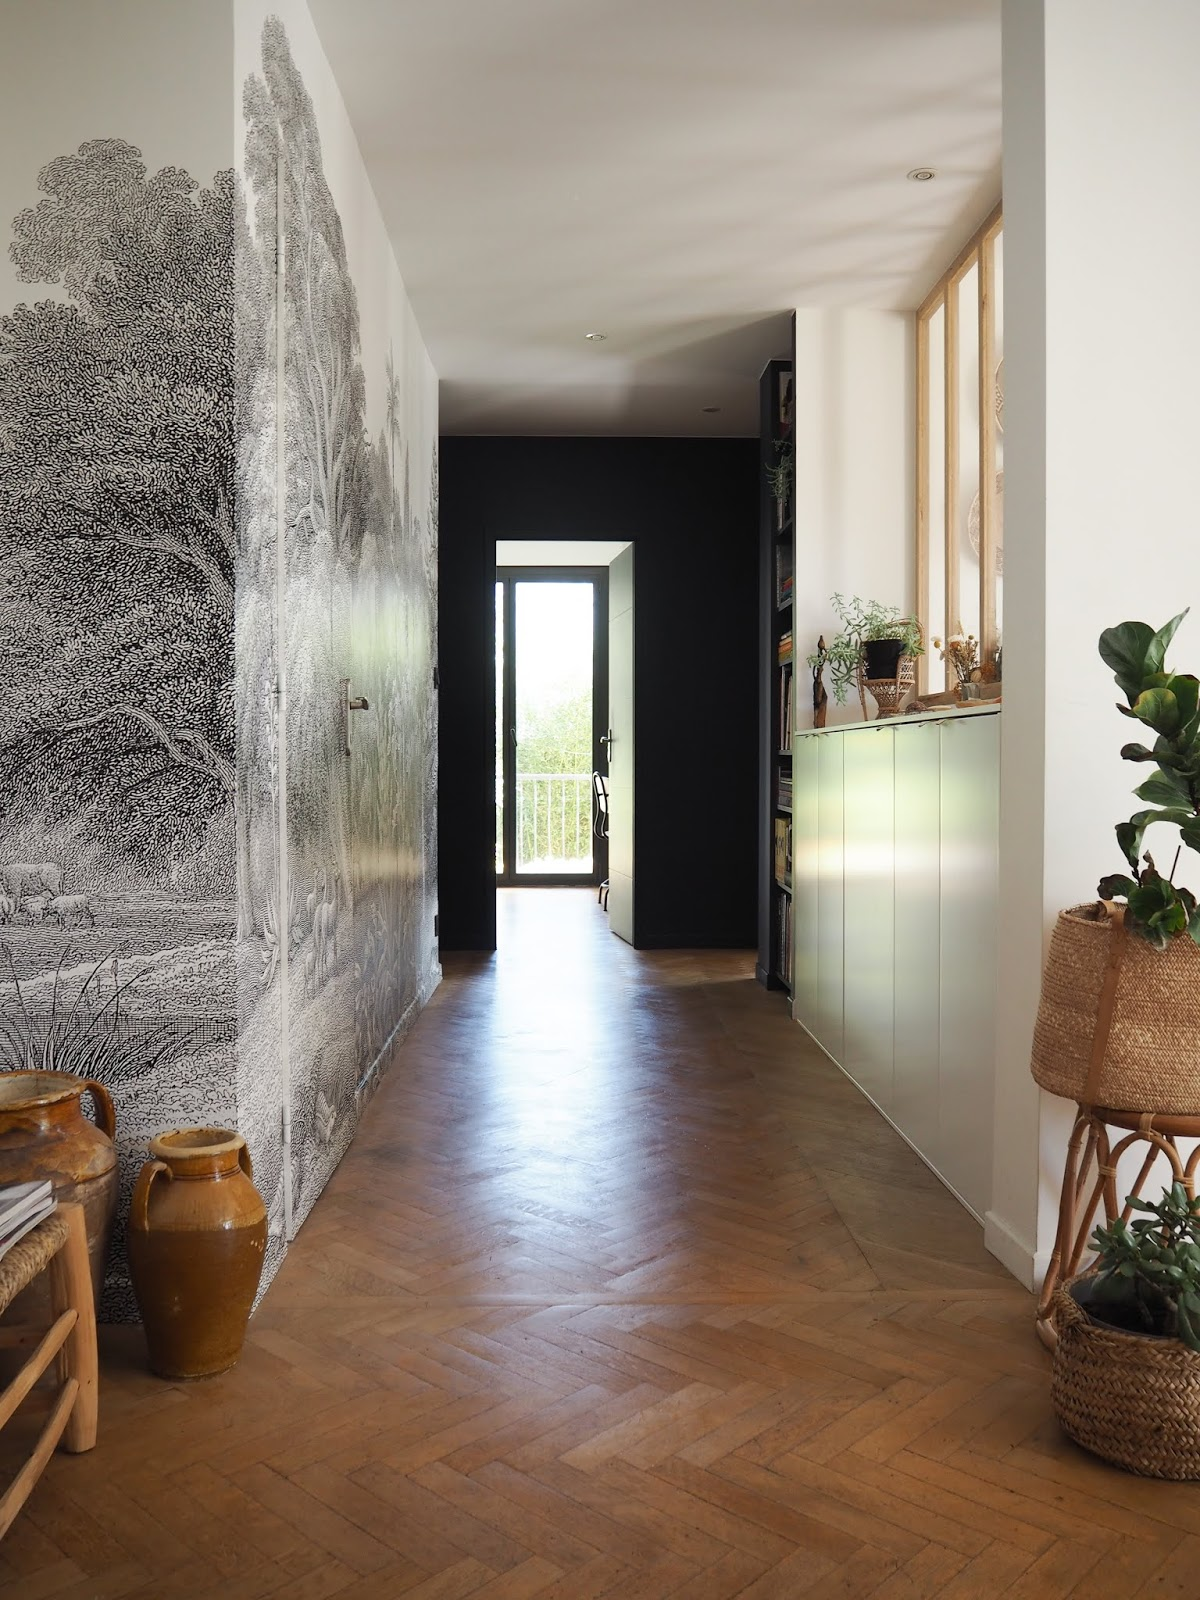 #ikeahack in a hallway - aménagement couloir • ilaria fatone